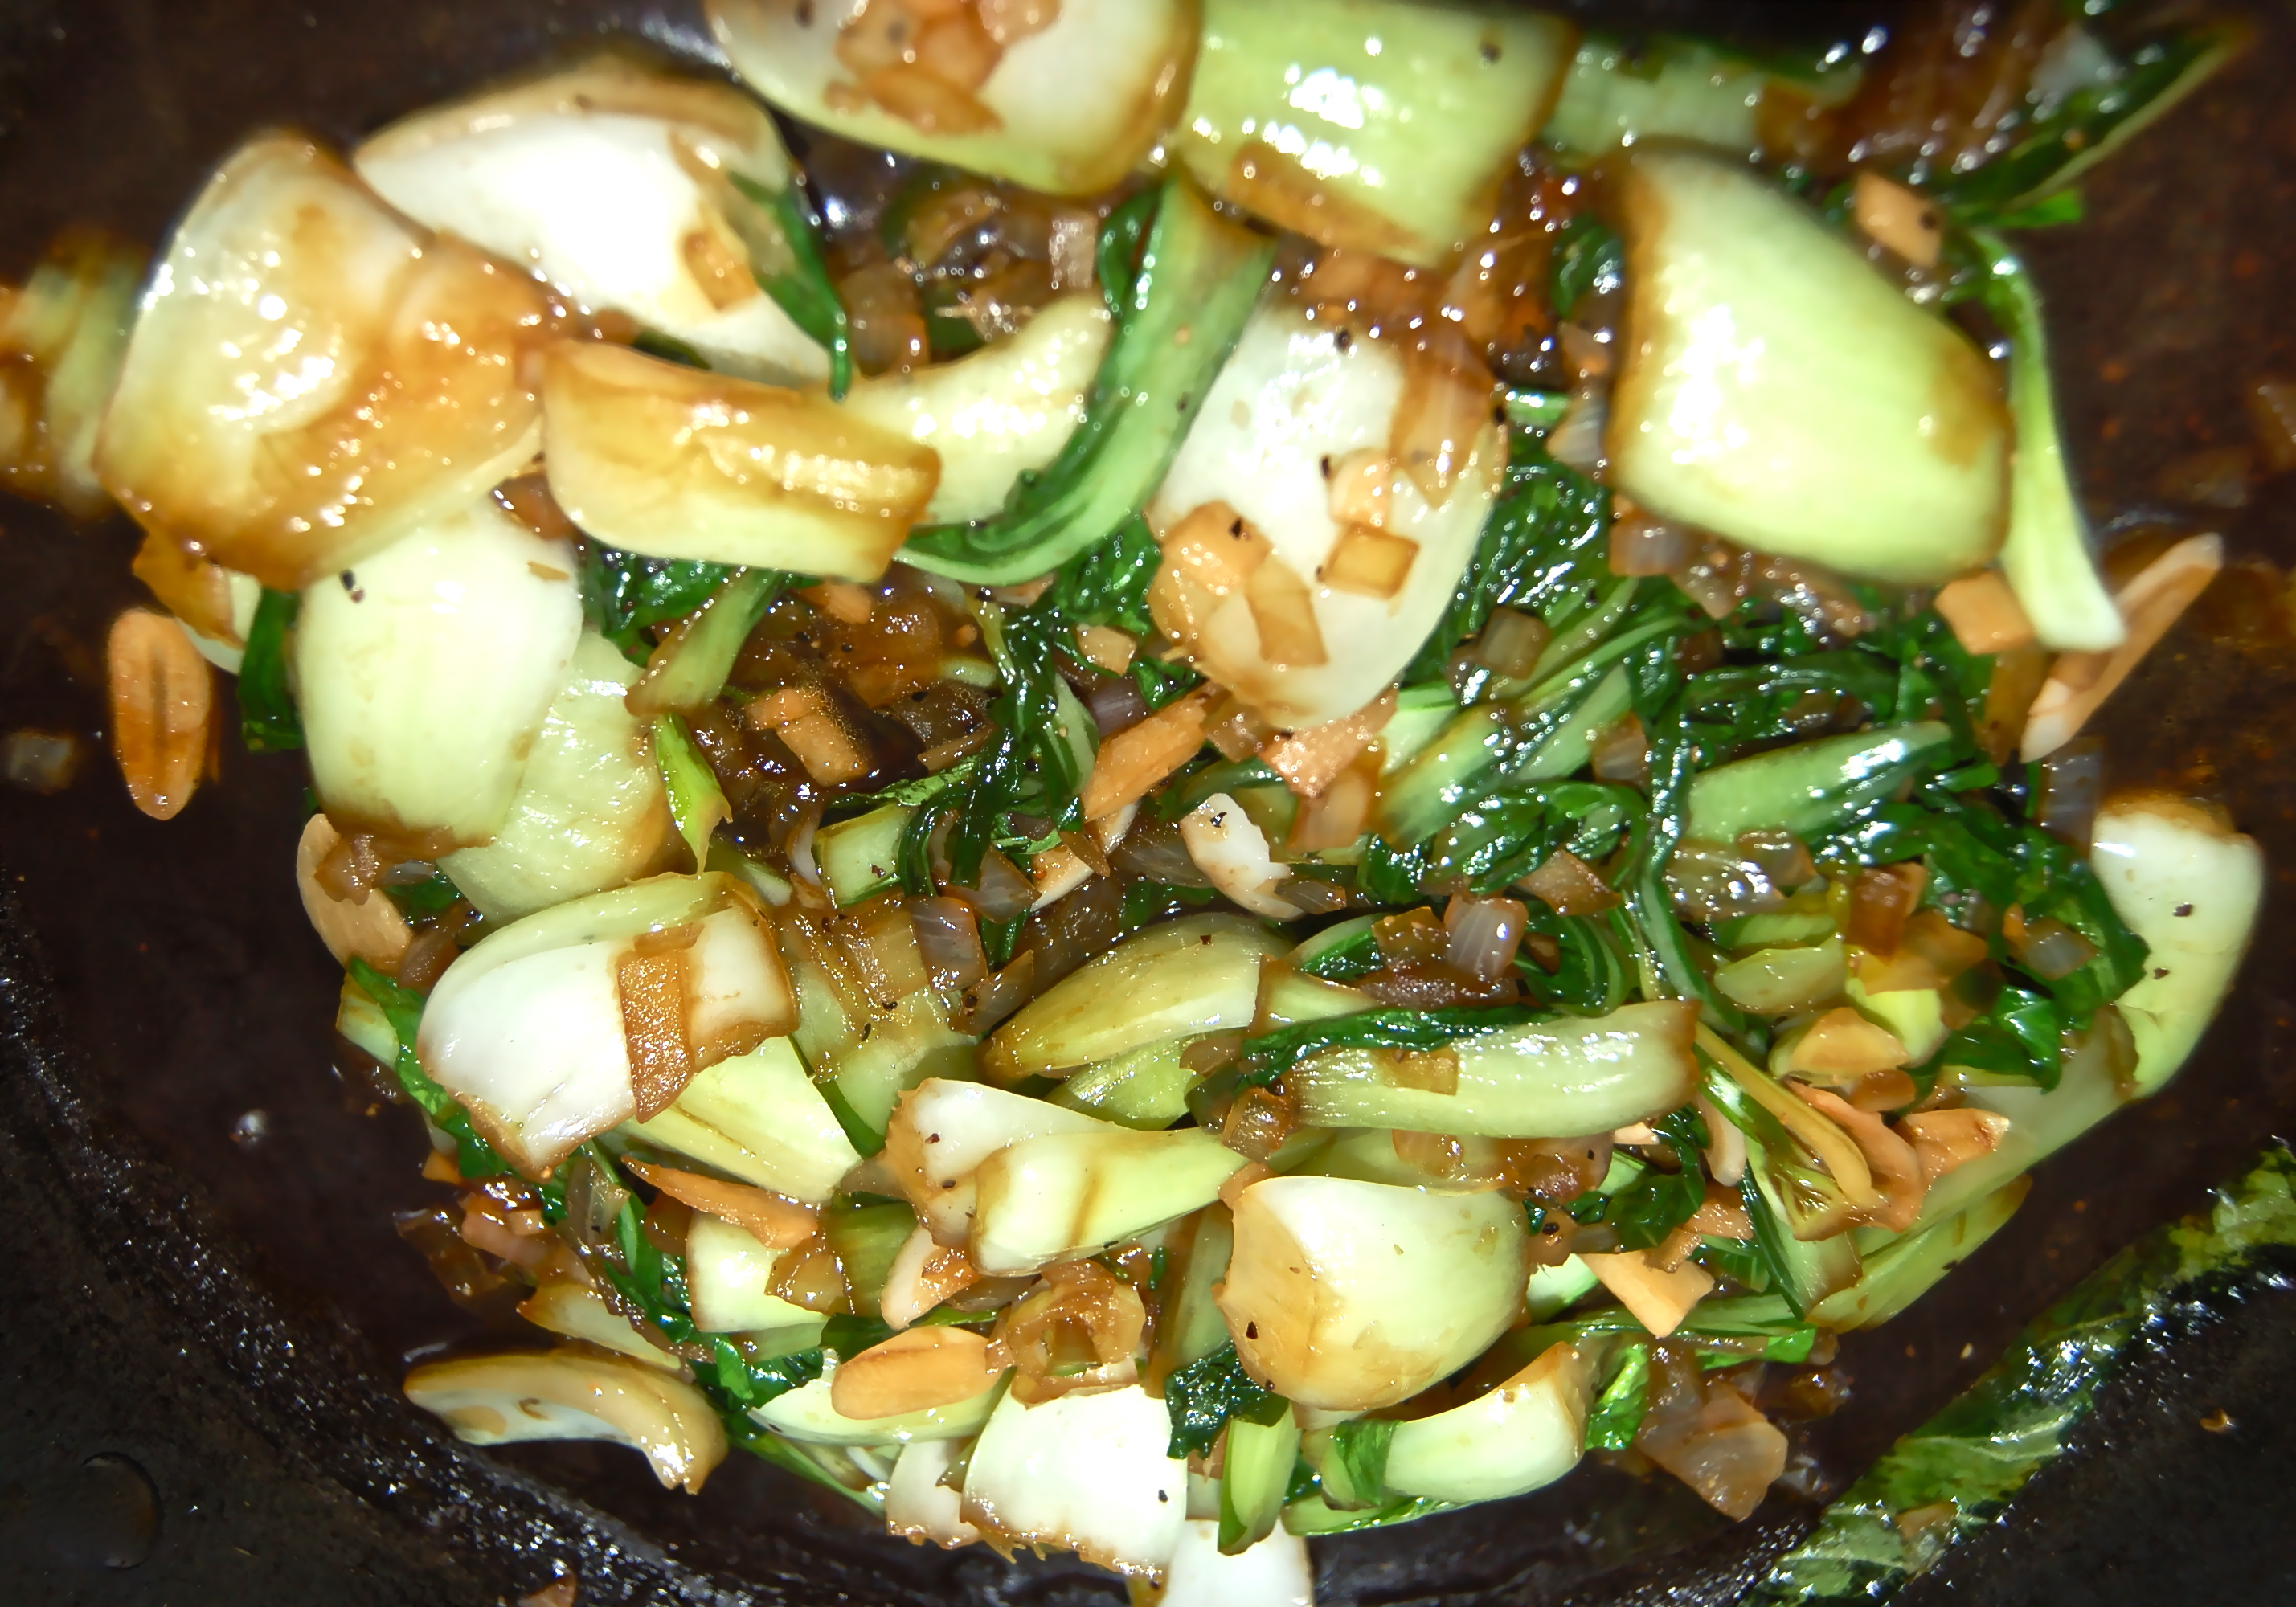 October 29, 2011 Bok Choy With Onion. Ginger & Garlic